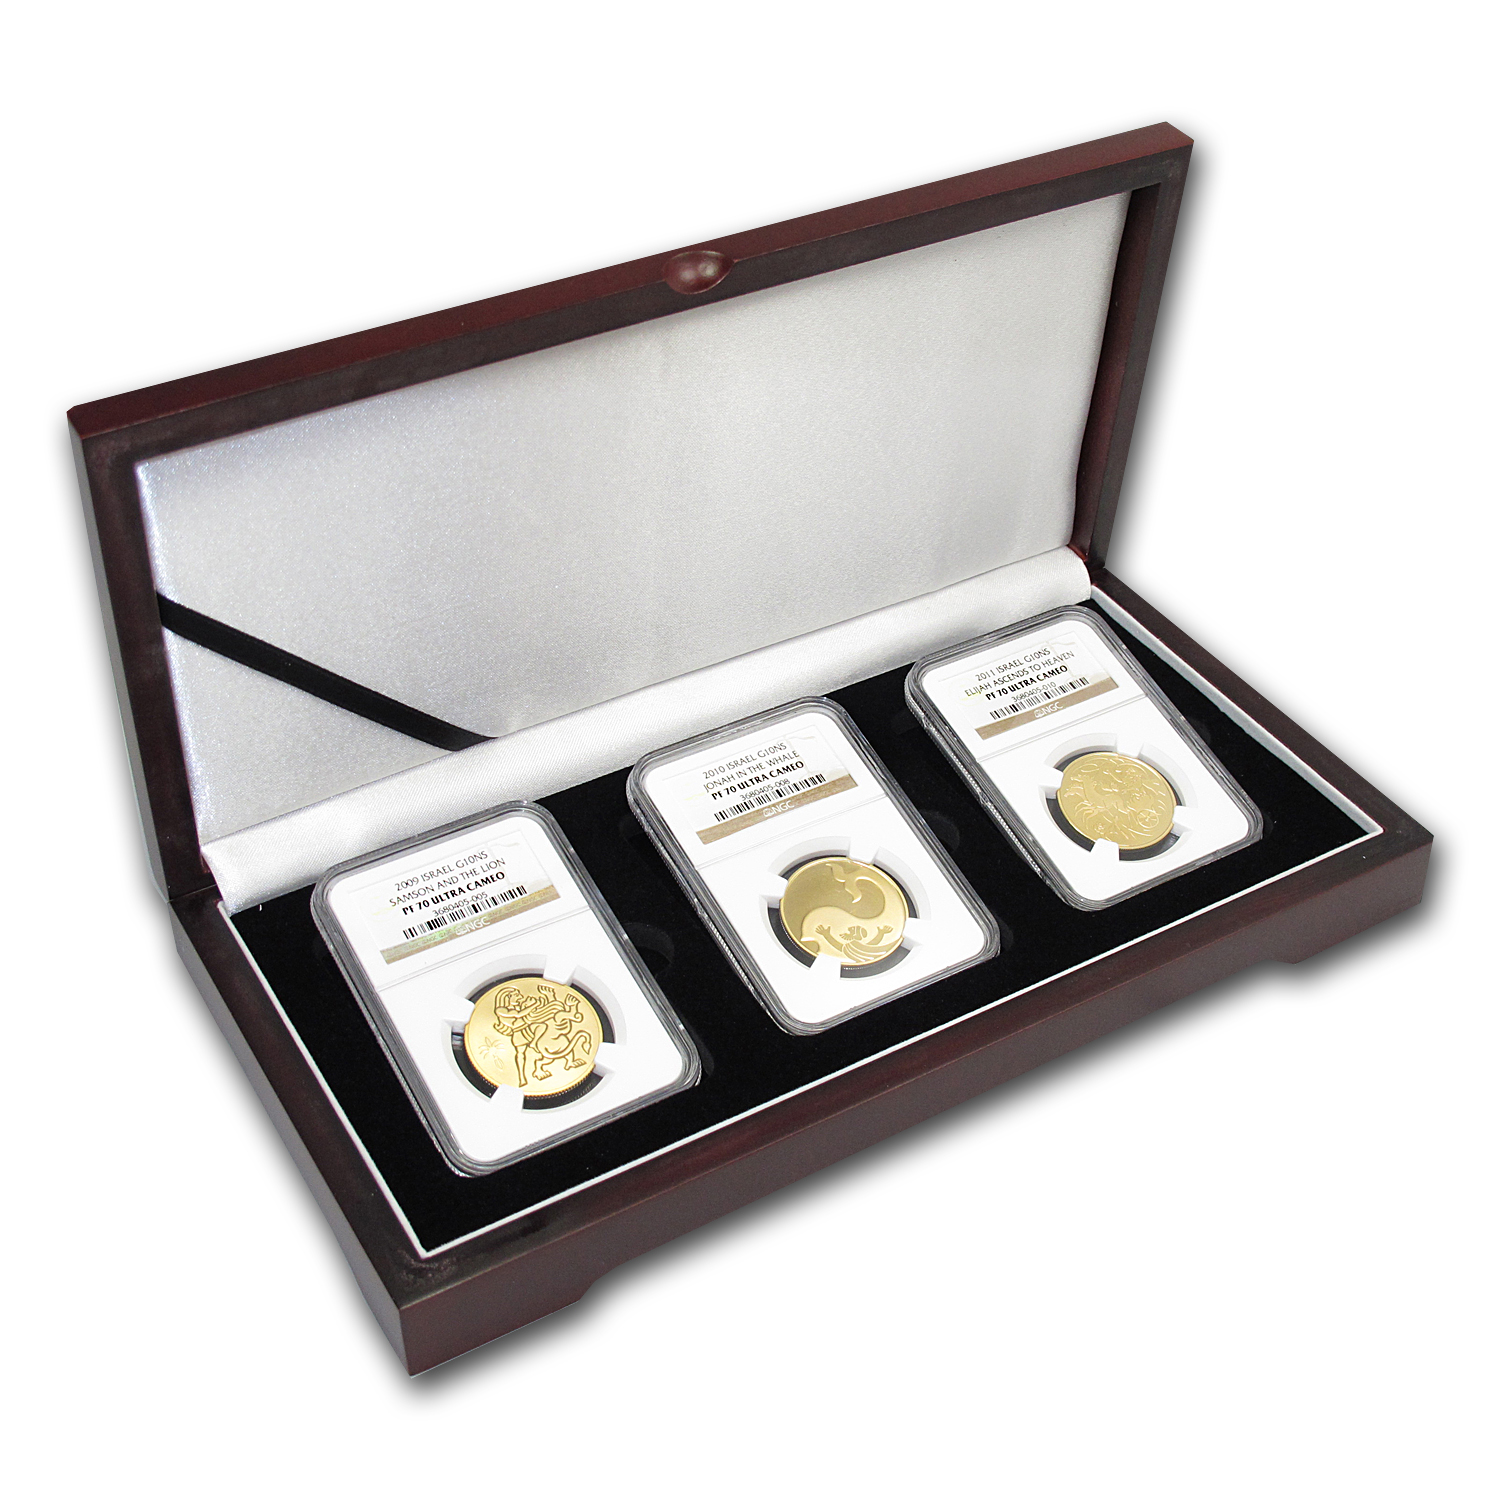 Israel 3-Coin 1/2 oz Gold Biblical Art Series Proof Set PF-70 NGC